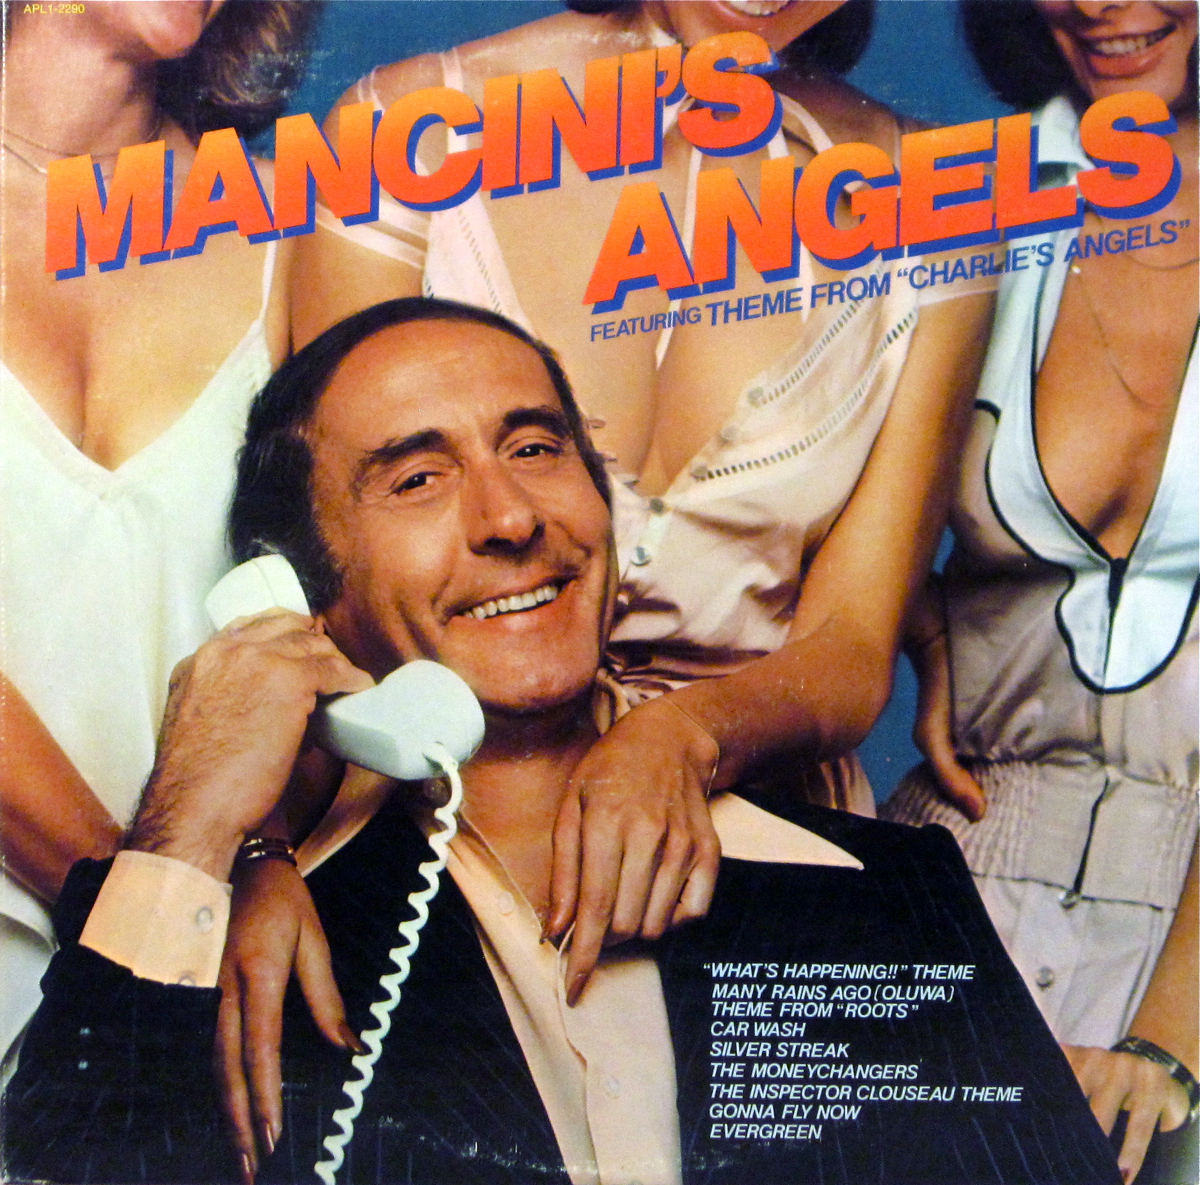 mancinis angels album cover